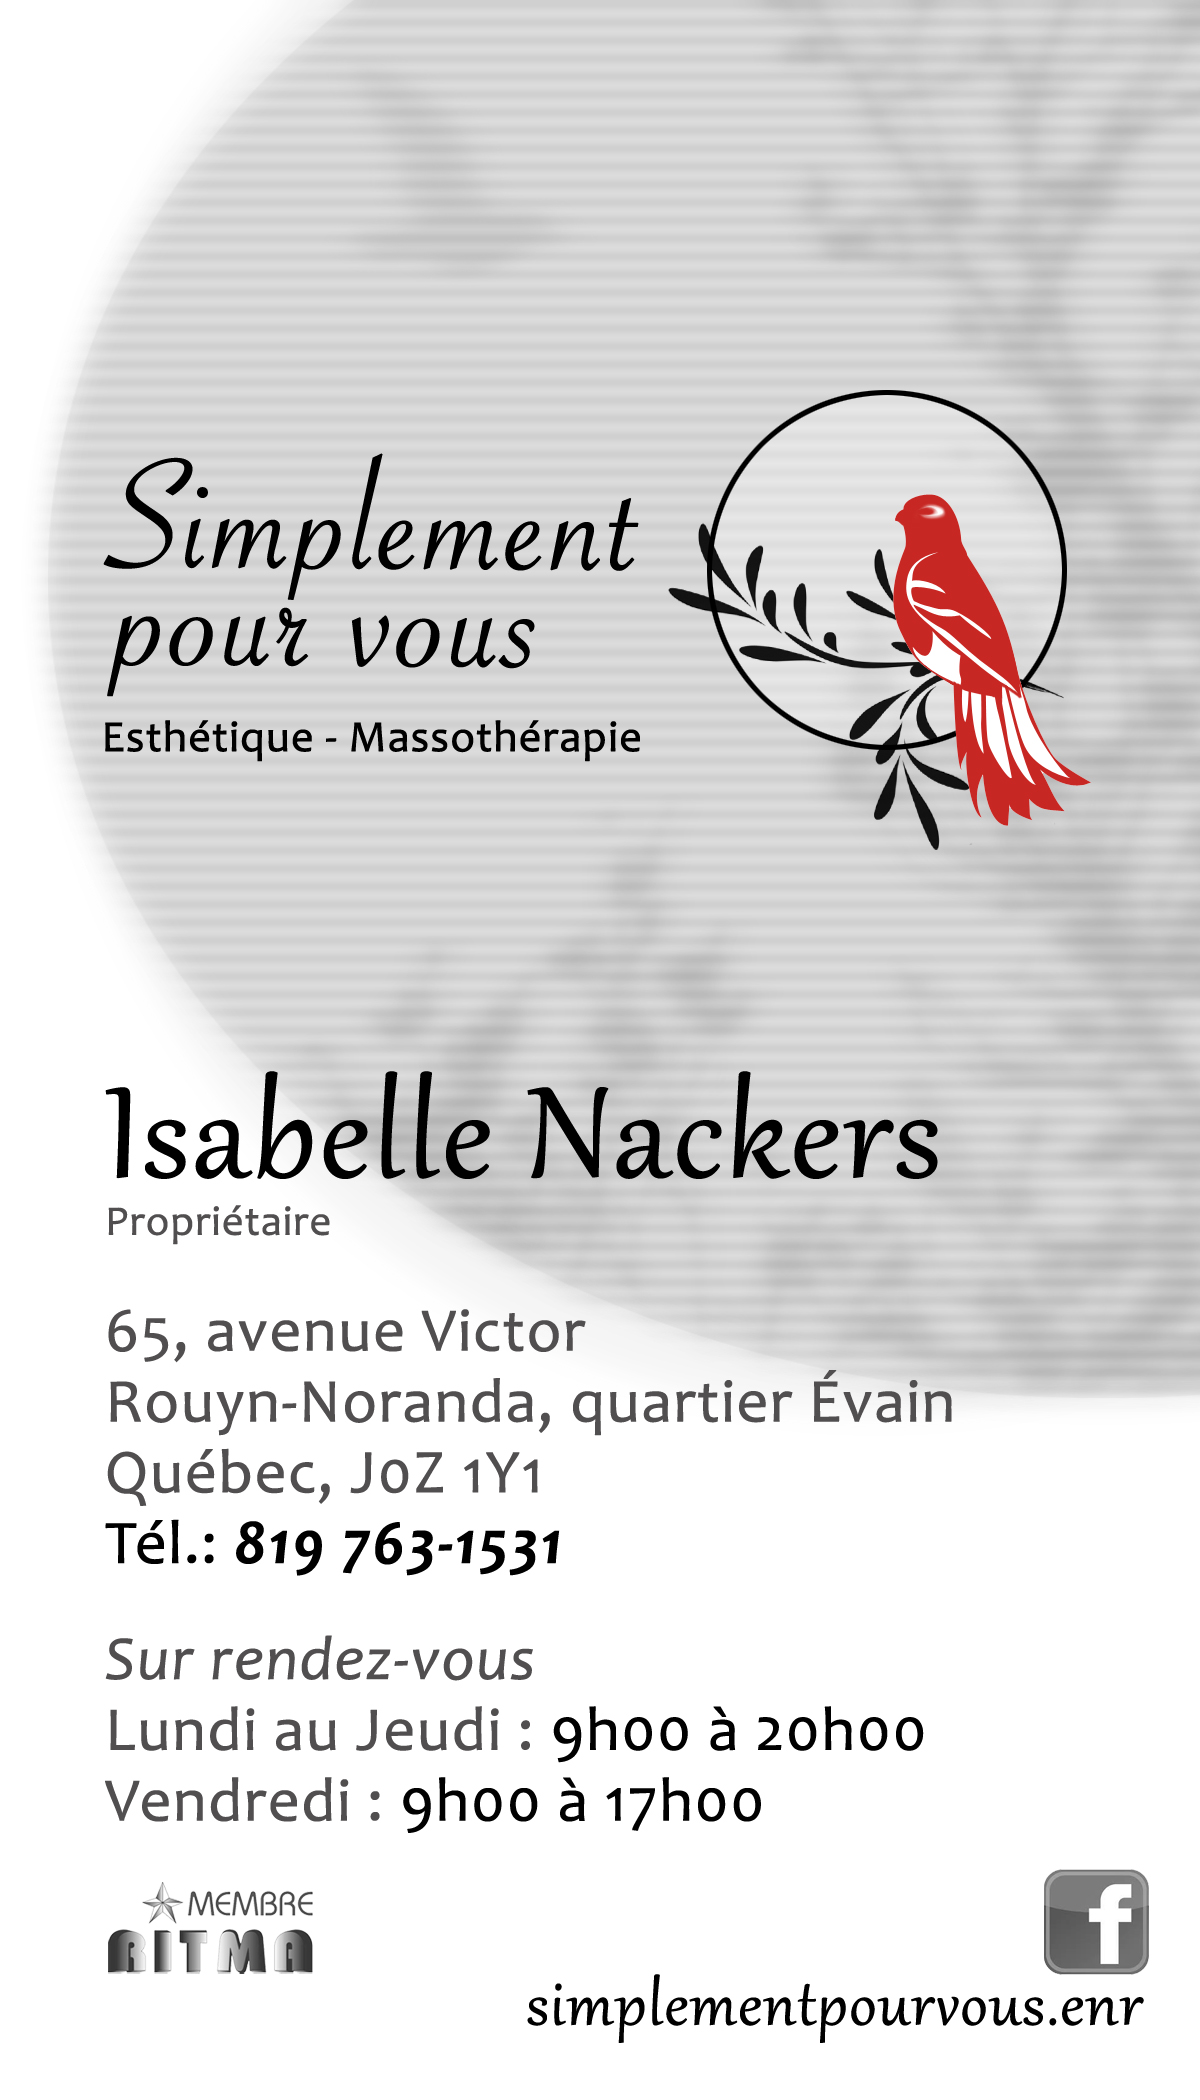 Isabelle Nackers